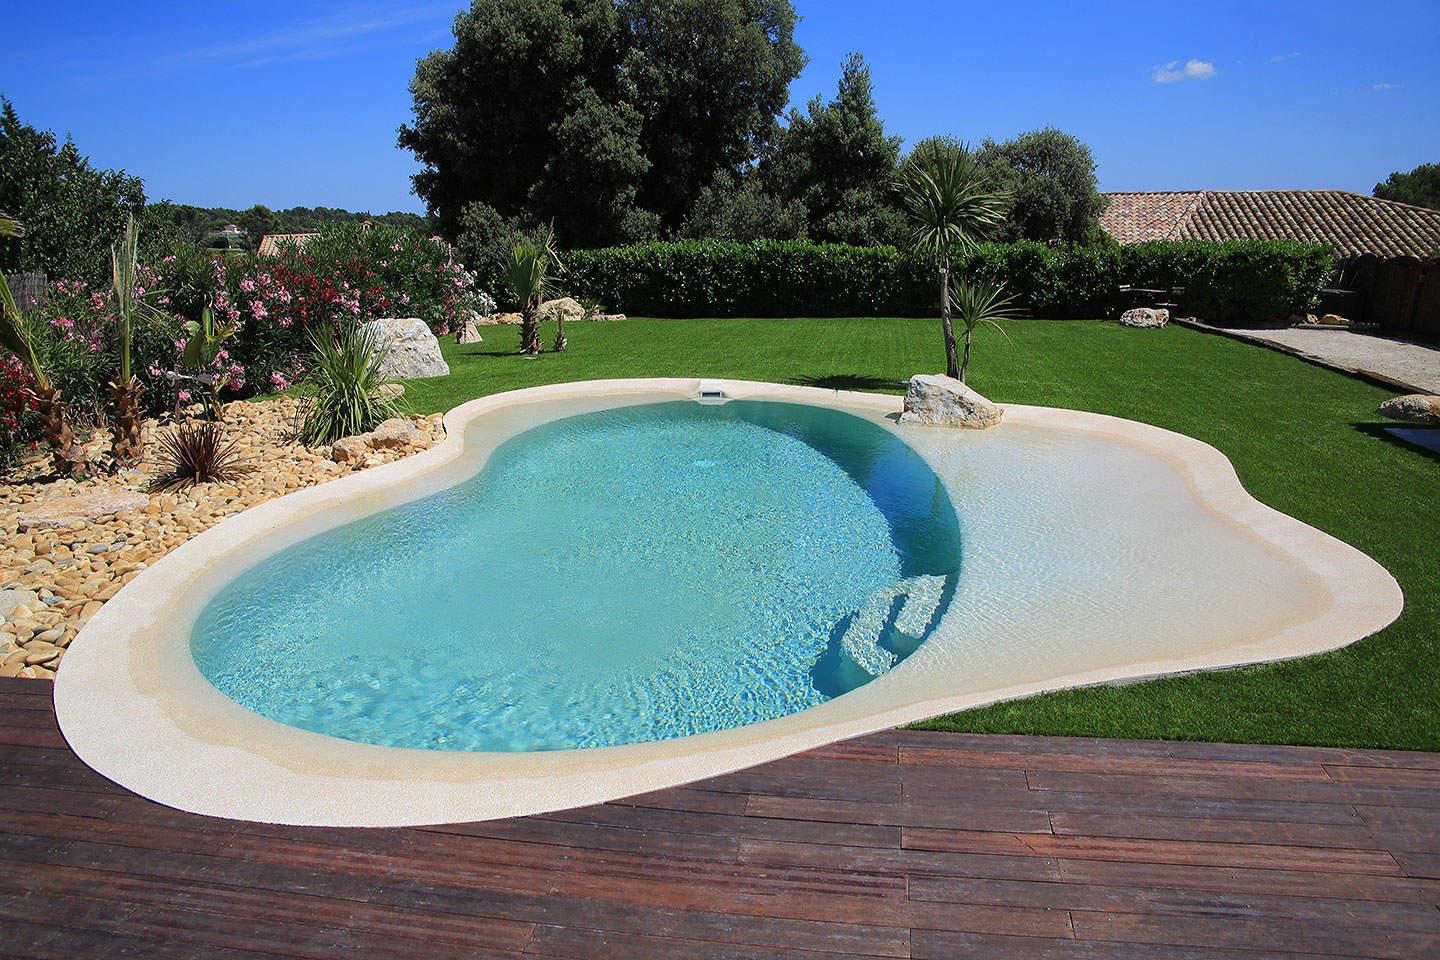 Nice piscine avec plage immergee 11 piscines for Piscine coque carree 3x3